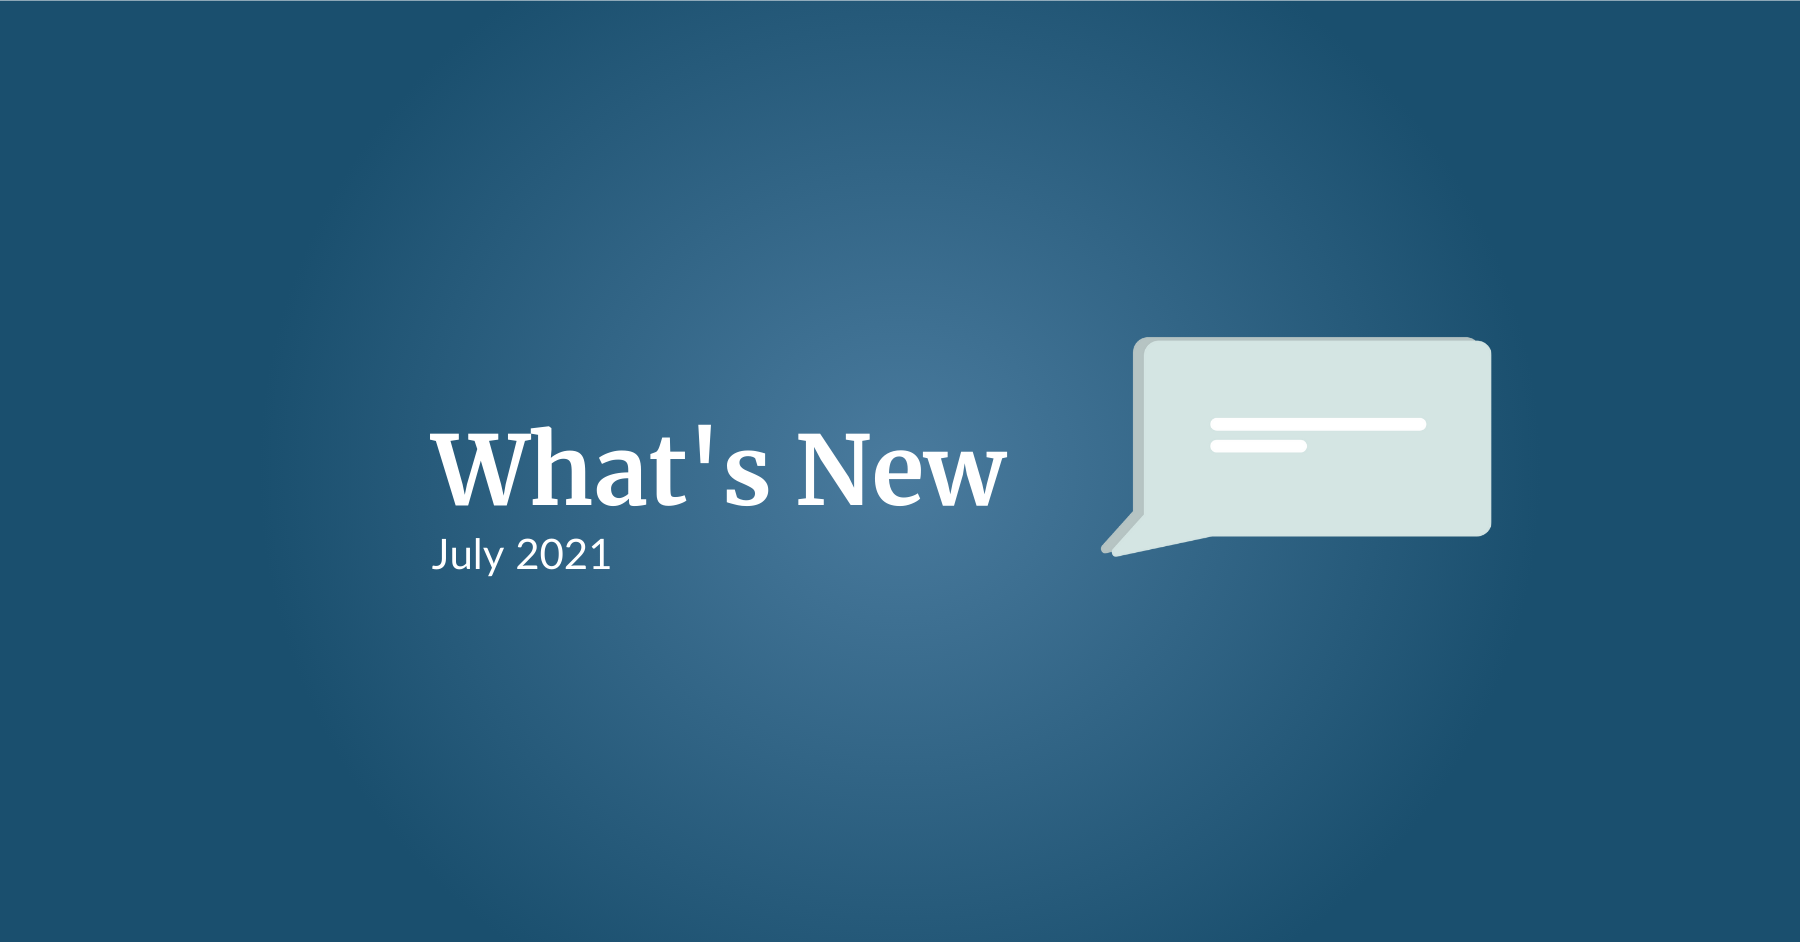 What's New: July 2021